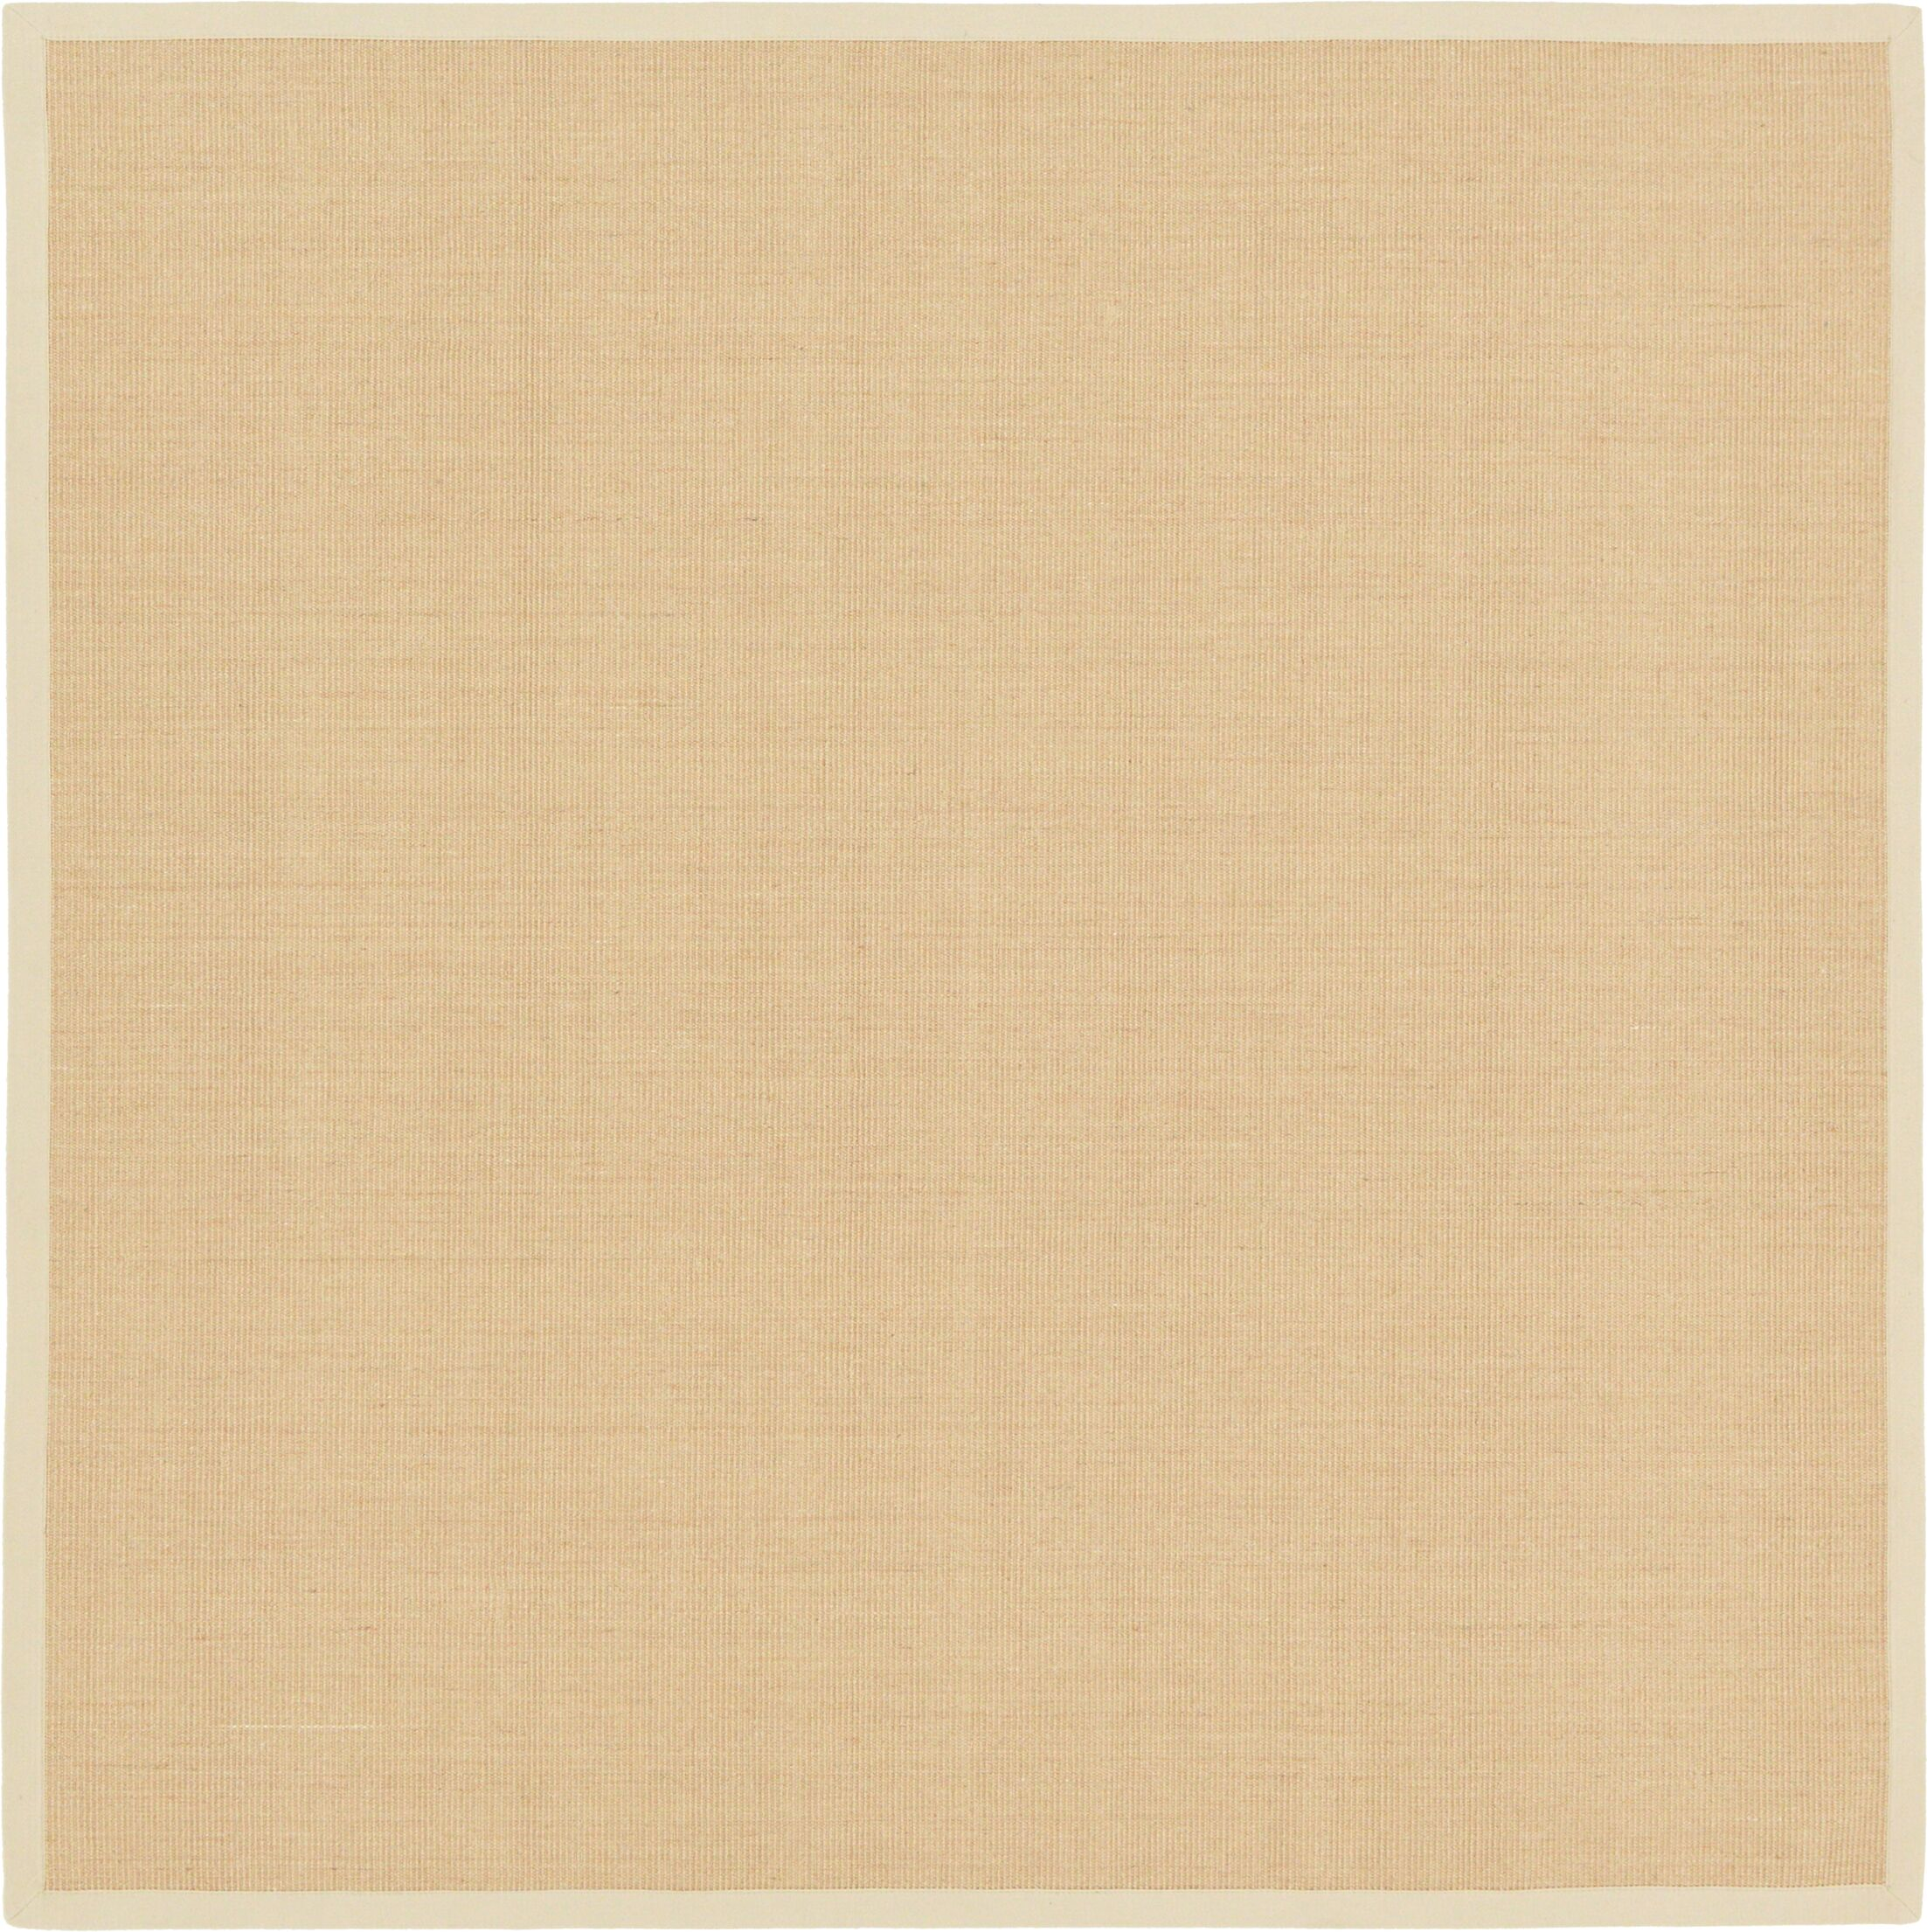 Newry Sand Indoor/Outdoor Area Rug Rug Size: Square 8' x 8'